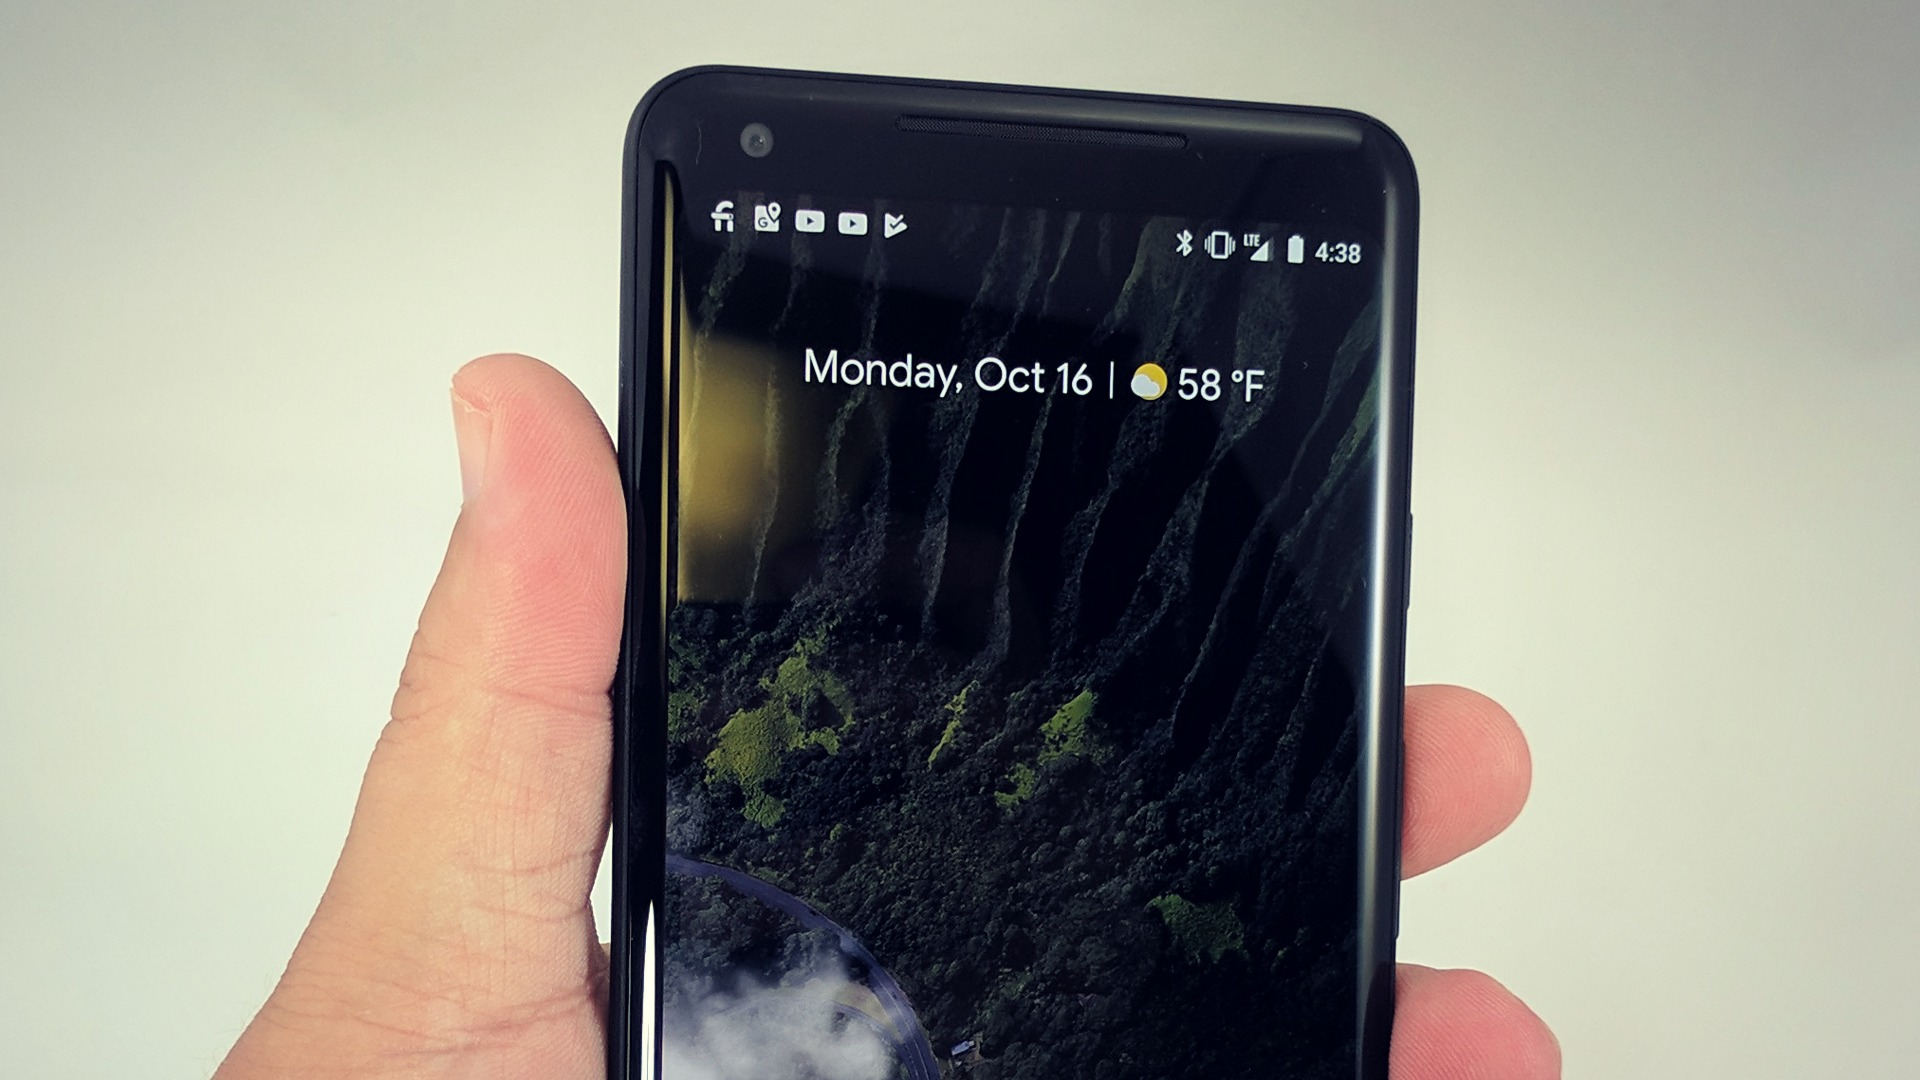 How to make your LG G7 ThinQ look like a Pixel 2